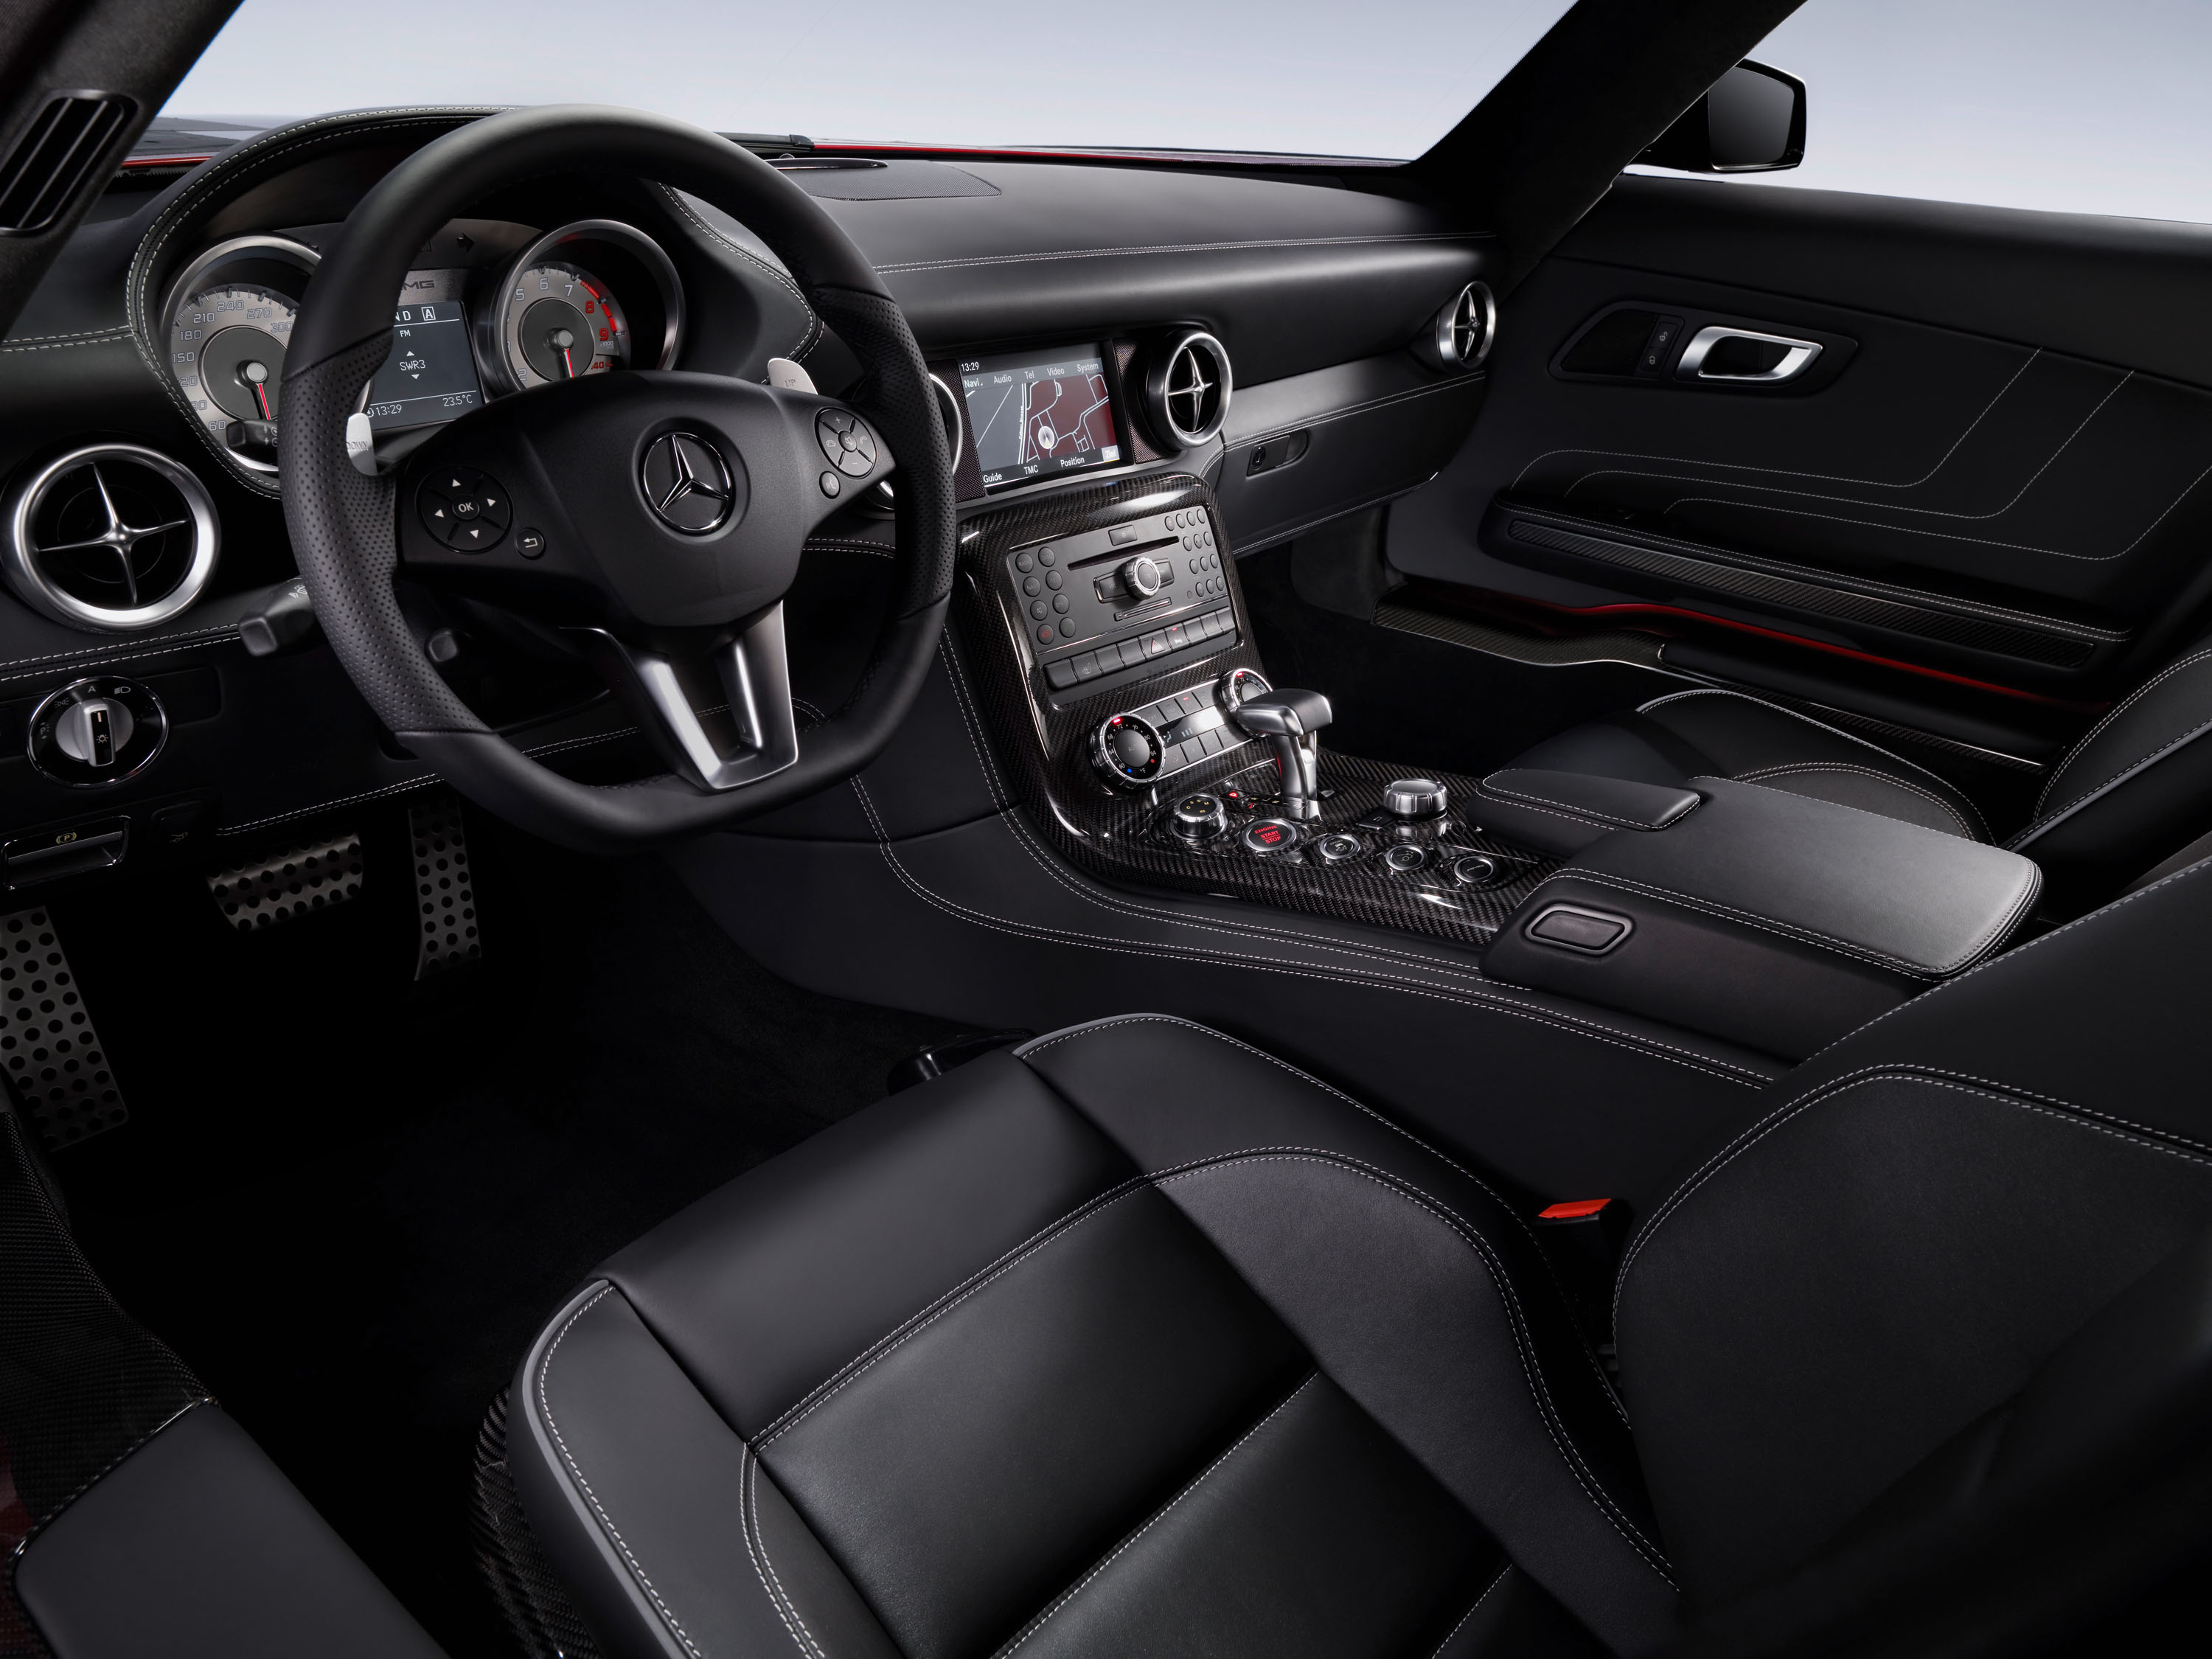 The Interior Of The Mercedes-Benz SLS AMG